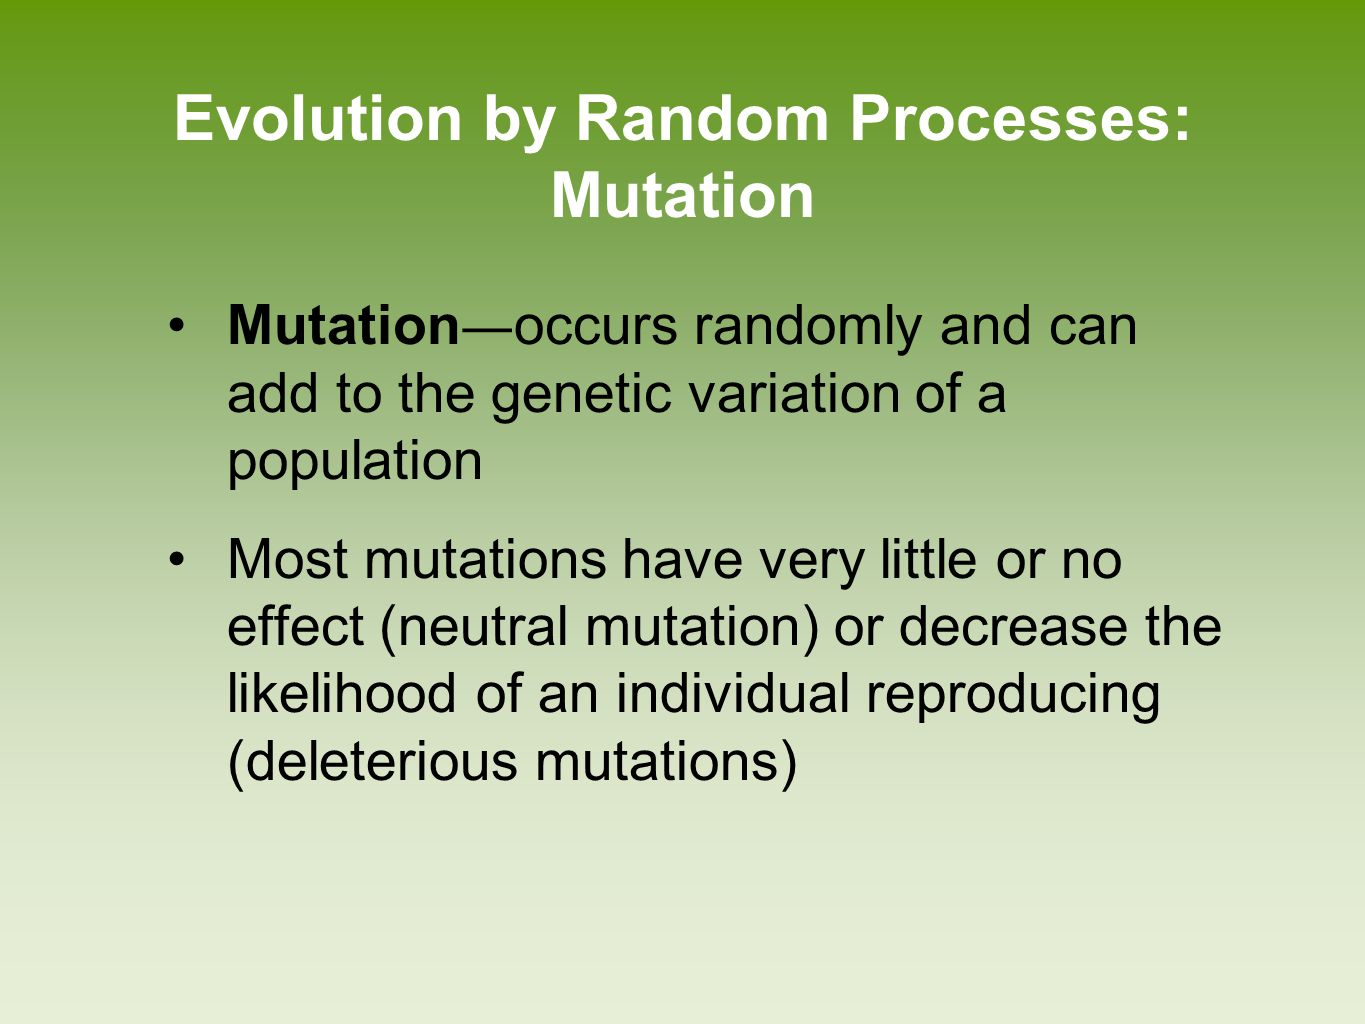 Evolution by Random Processes: Mutation